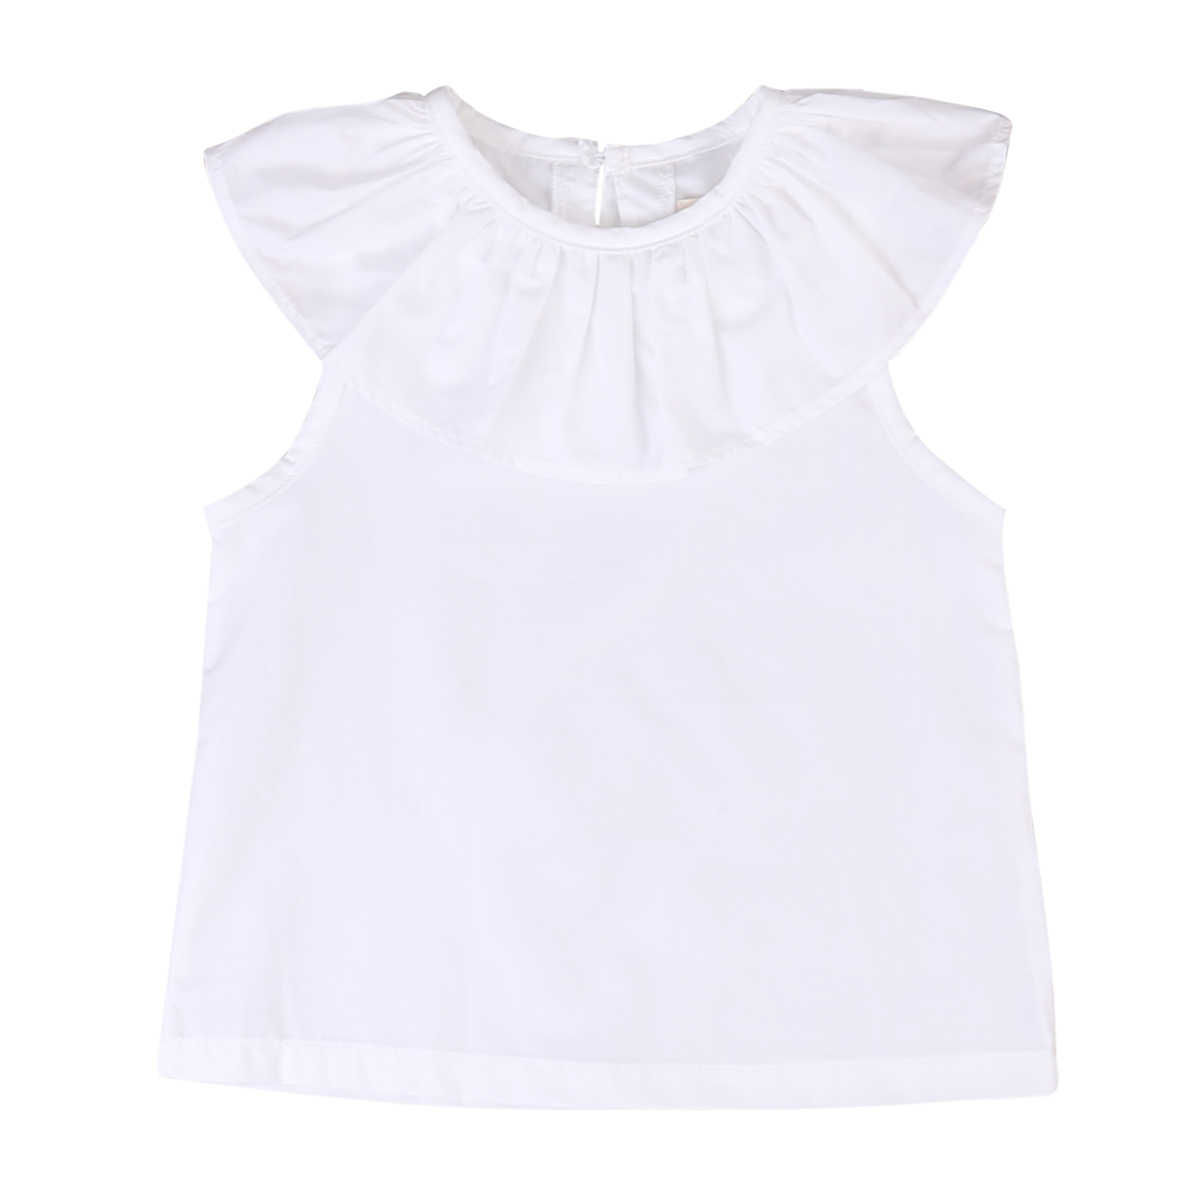 Blouse Emmababy Infant Toddler 2018 Summer Casual Shirt Crew Neck Ruffle Button Sleeveless Tops Kids Baby Girls Blouse